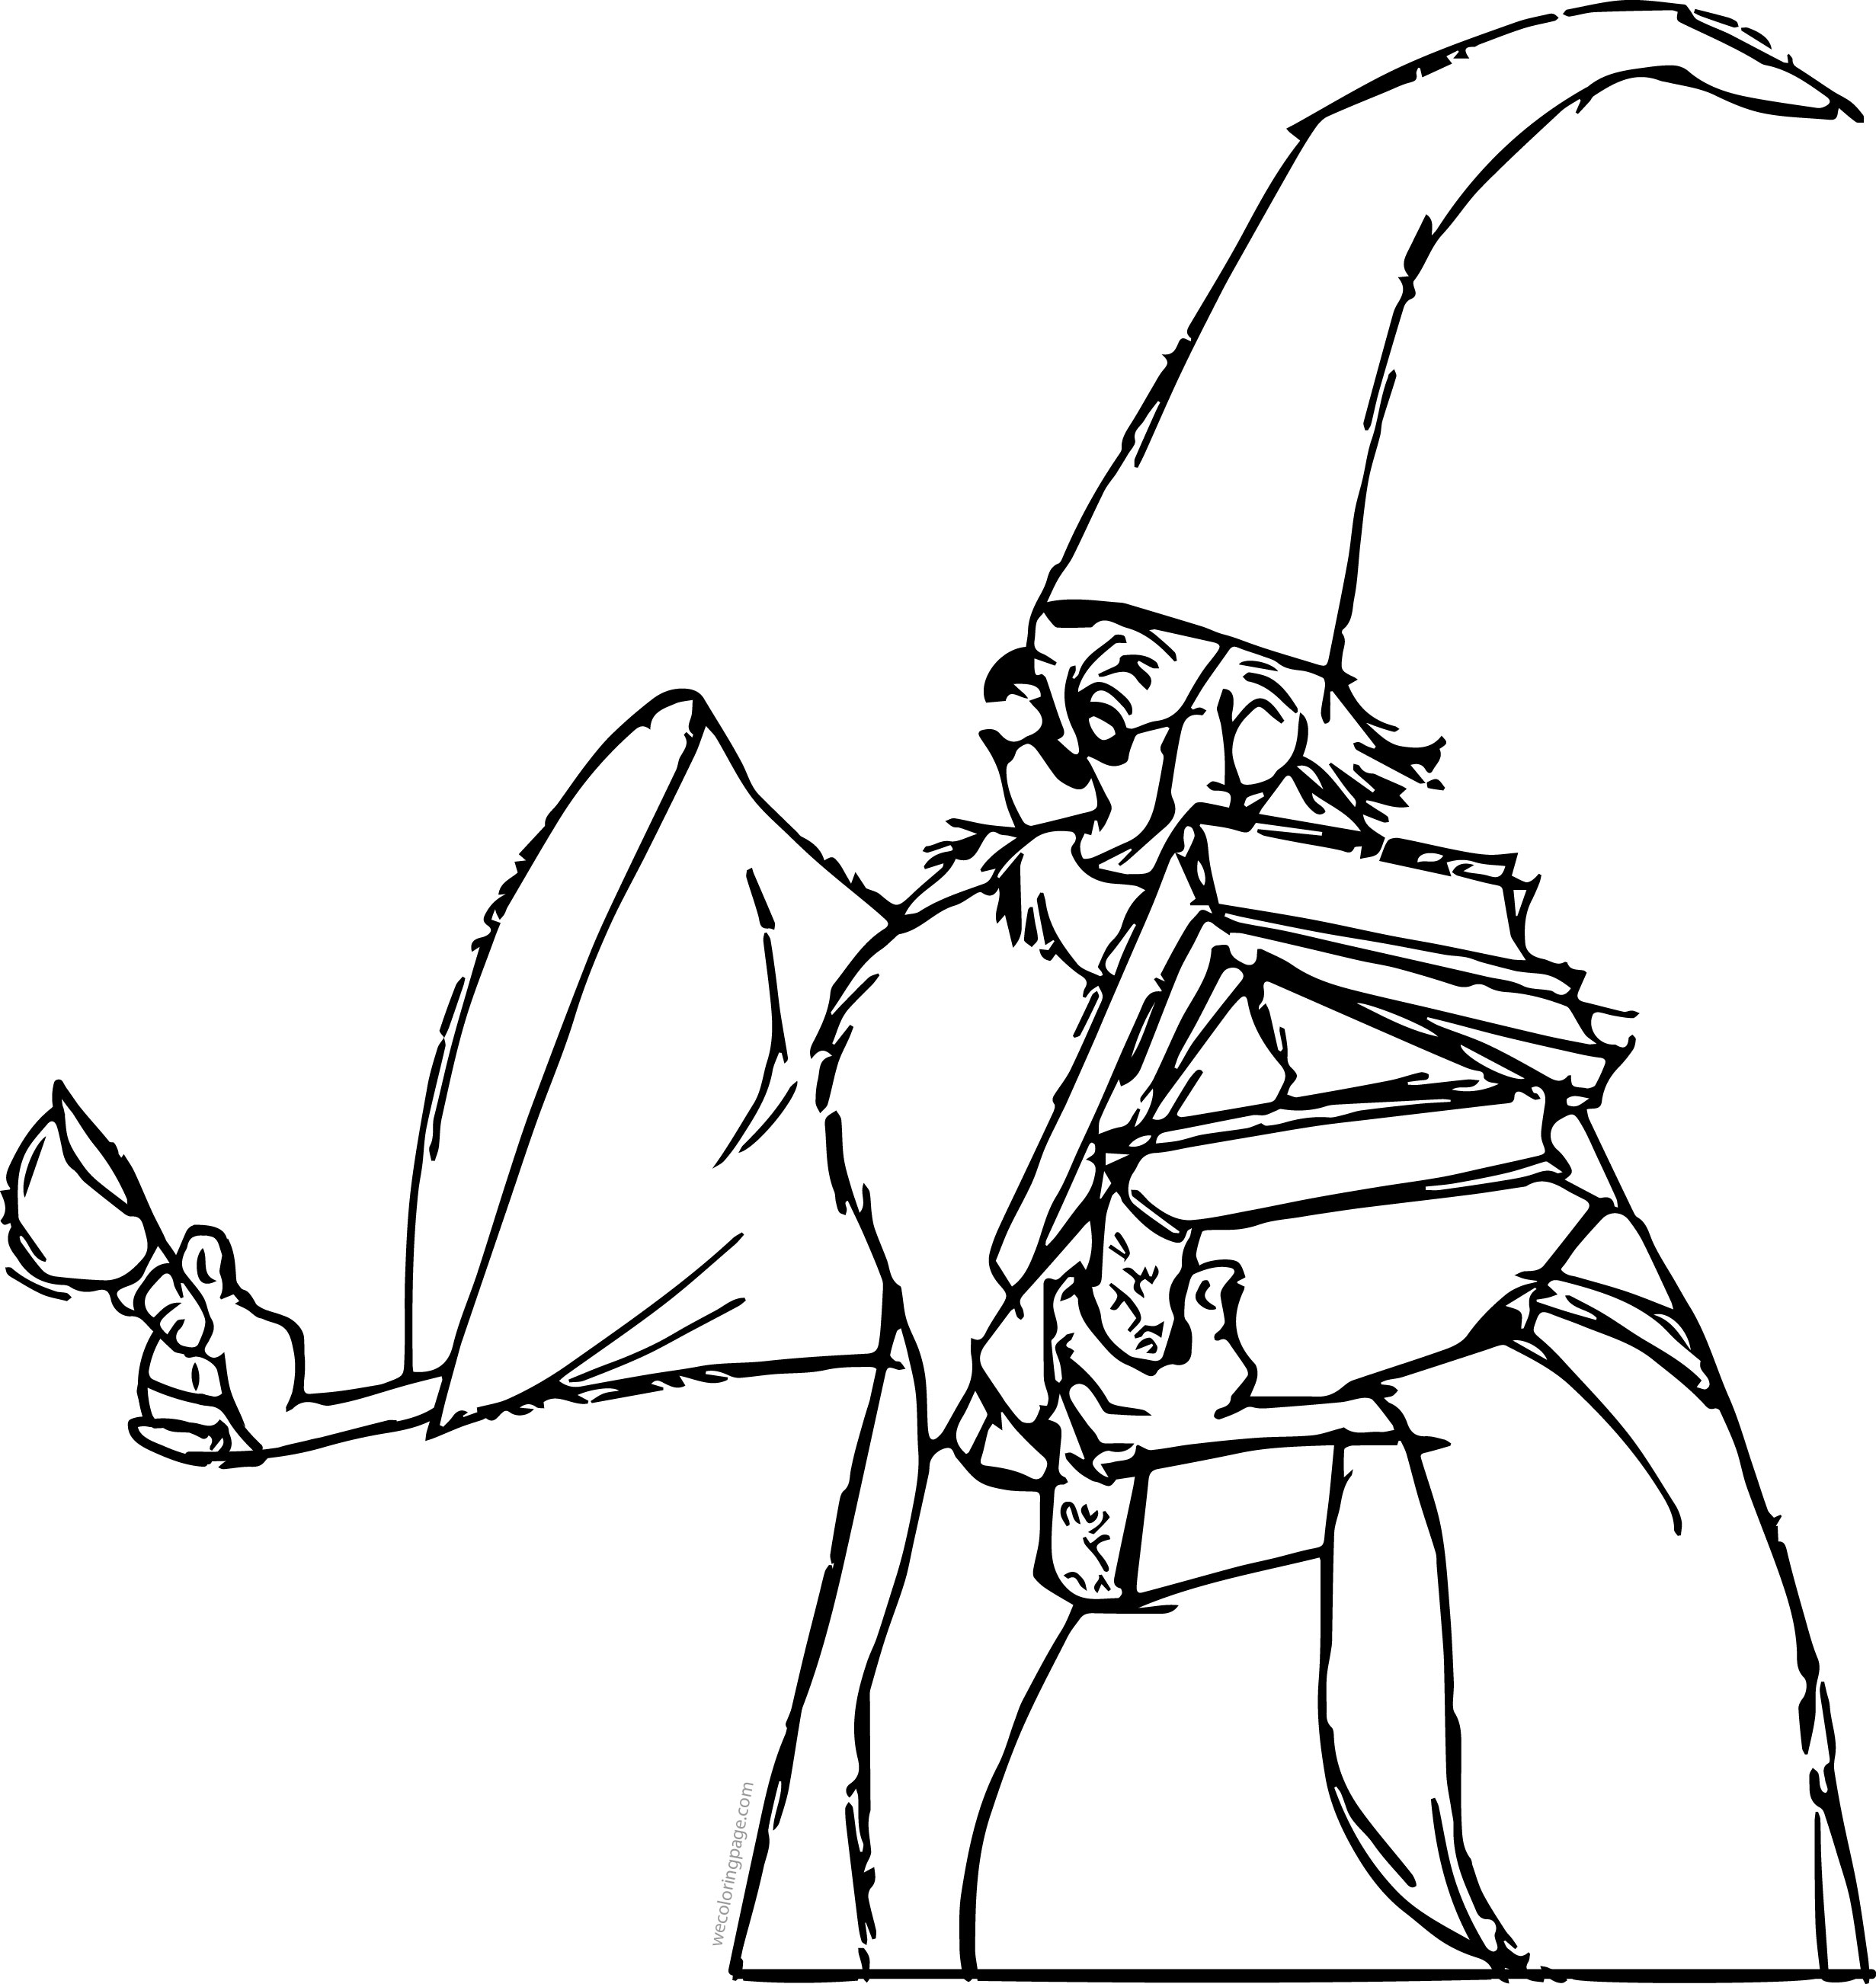 The Sword In The Stone Magician Merlin Sugar Cartoon Coloring Pages